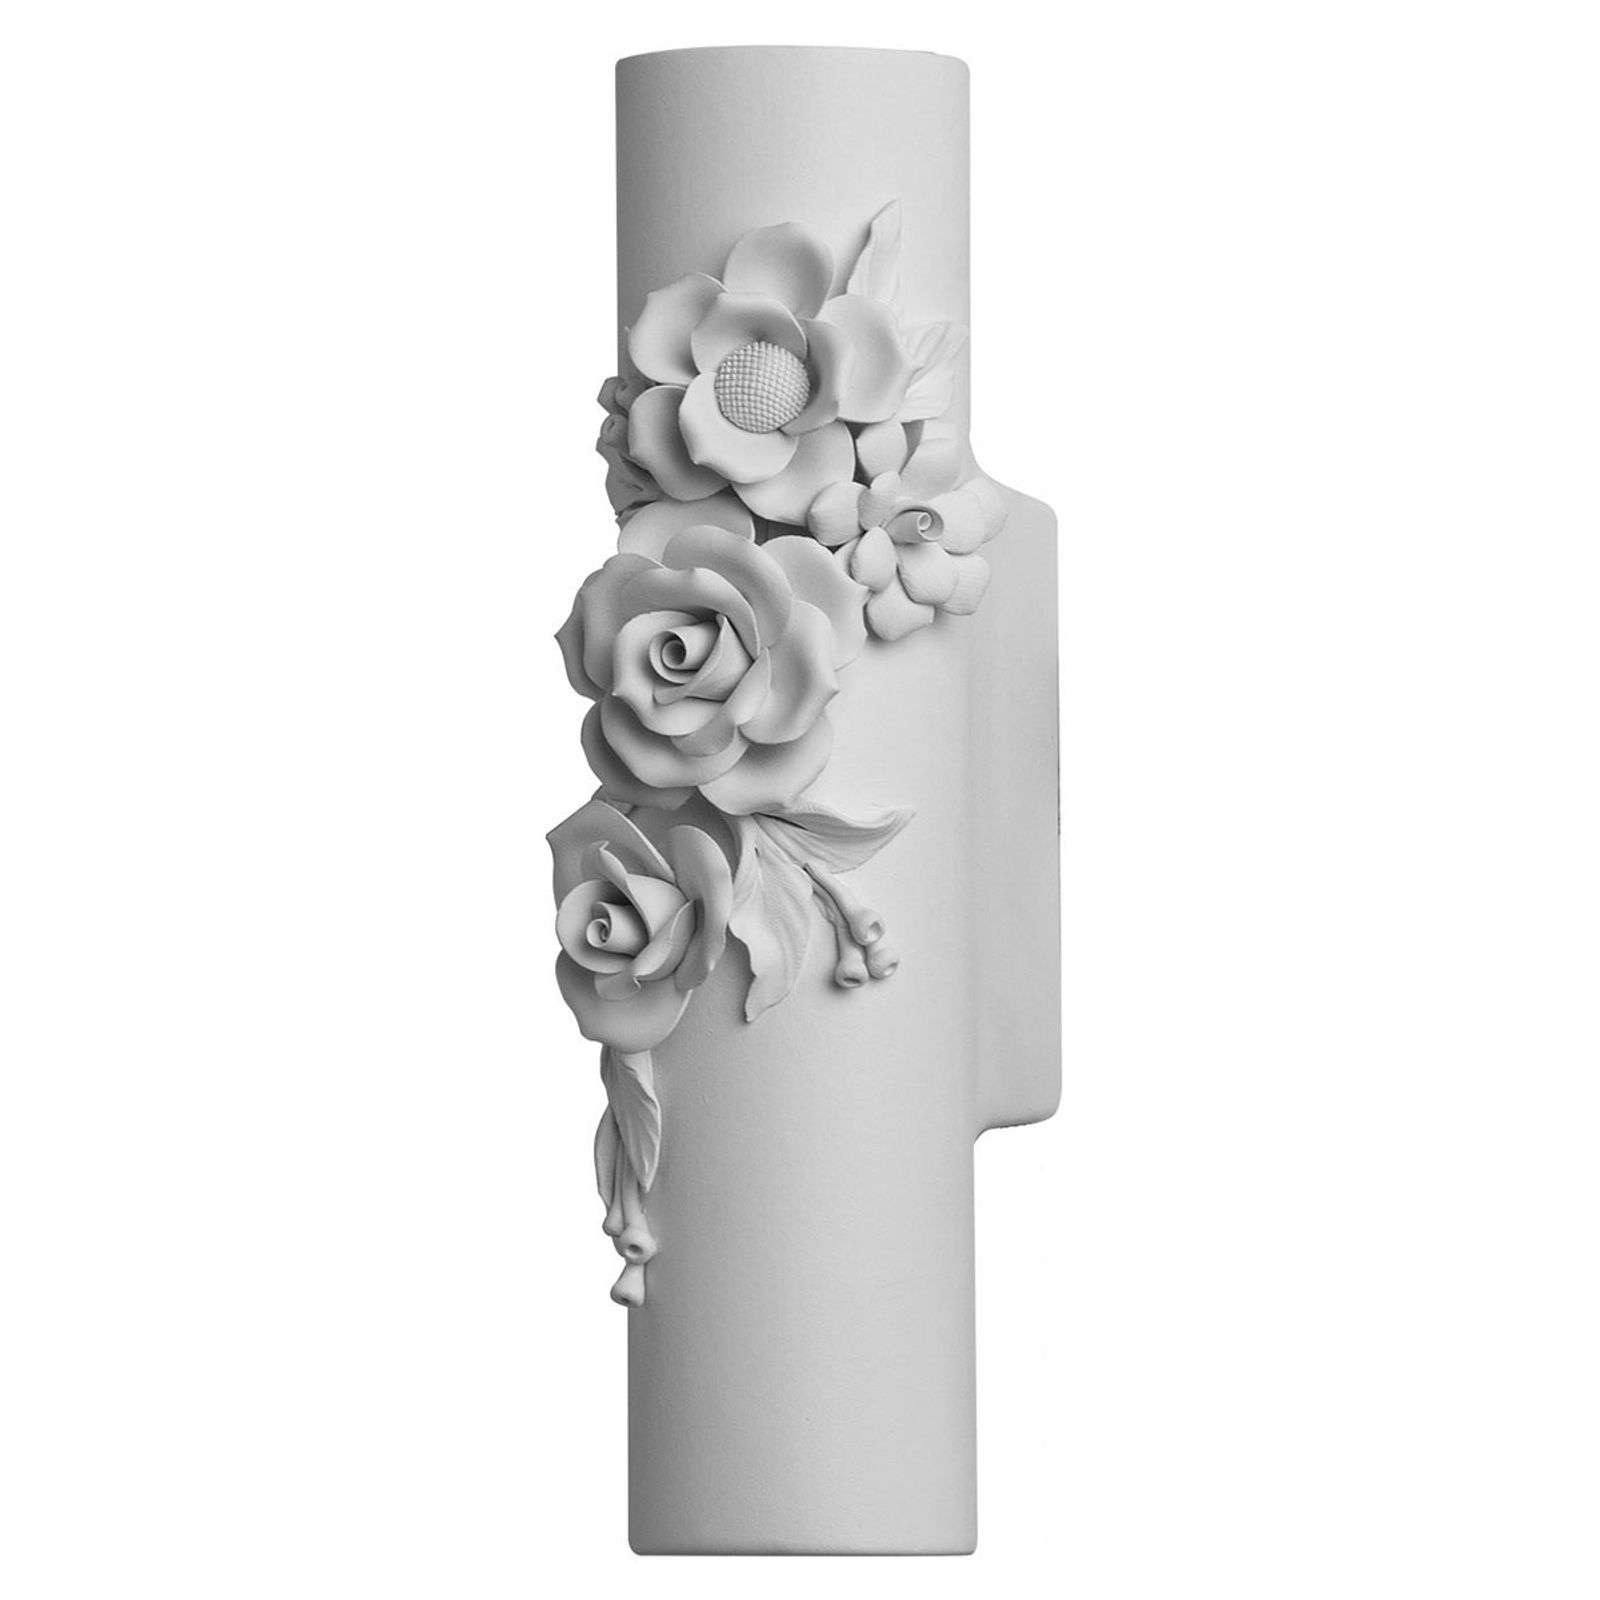 Applique a LED di ceramica Capodimonte